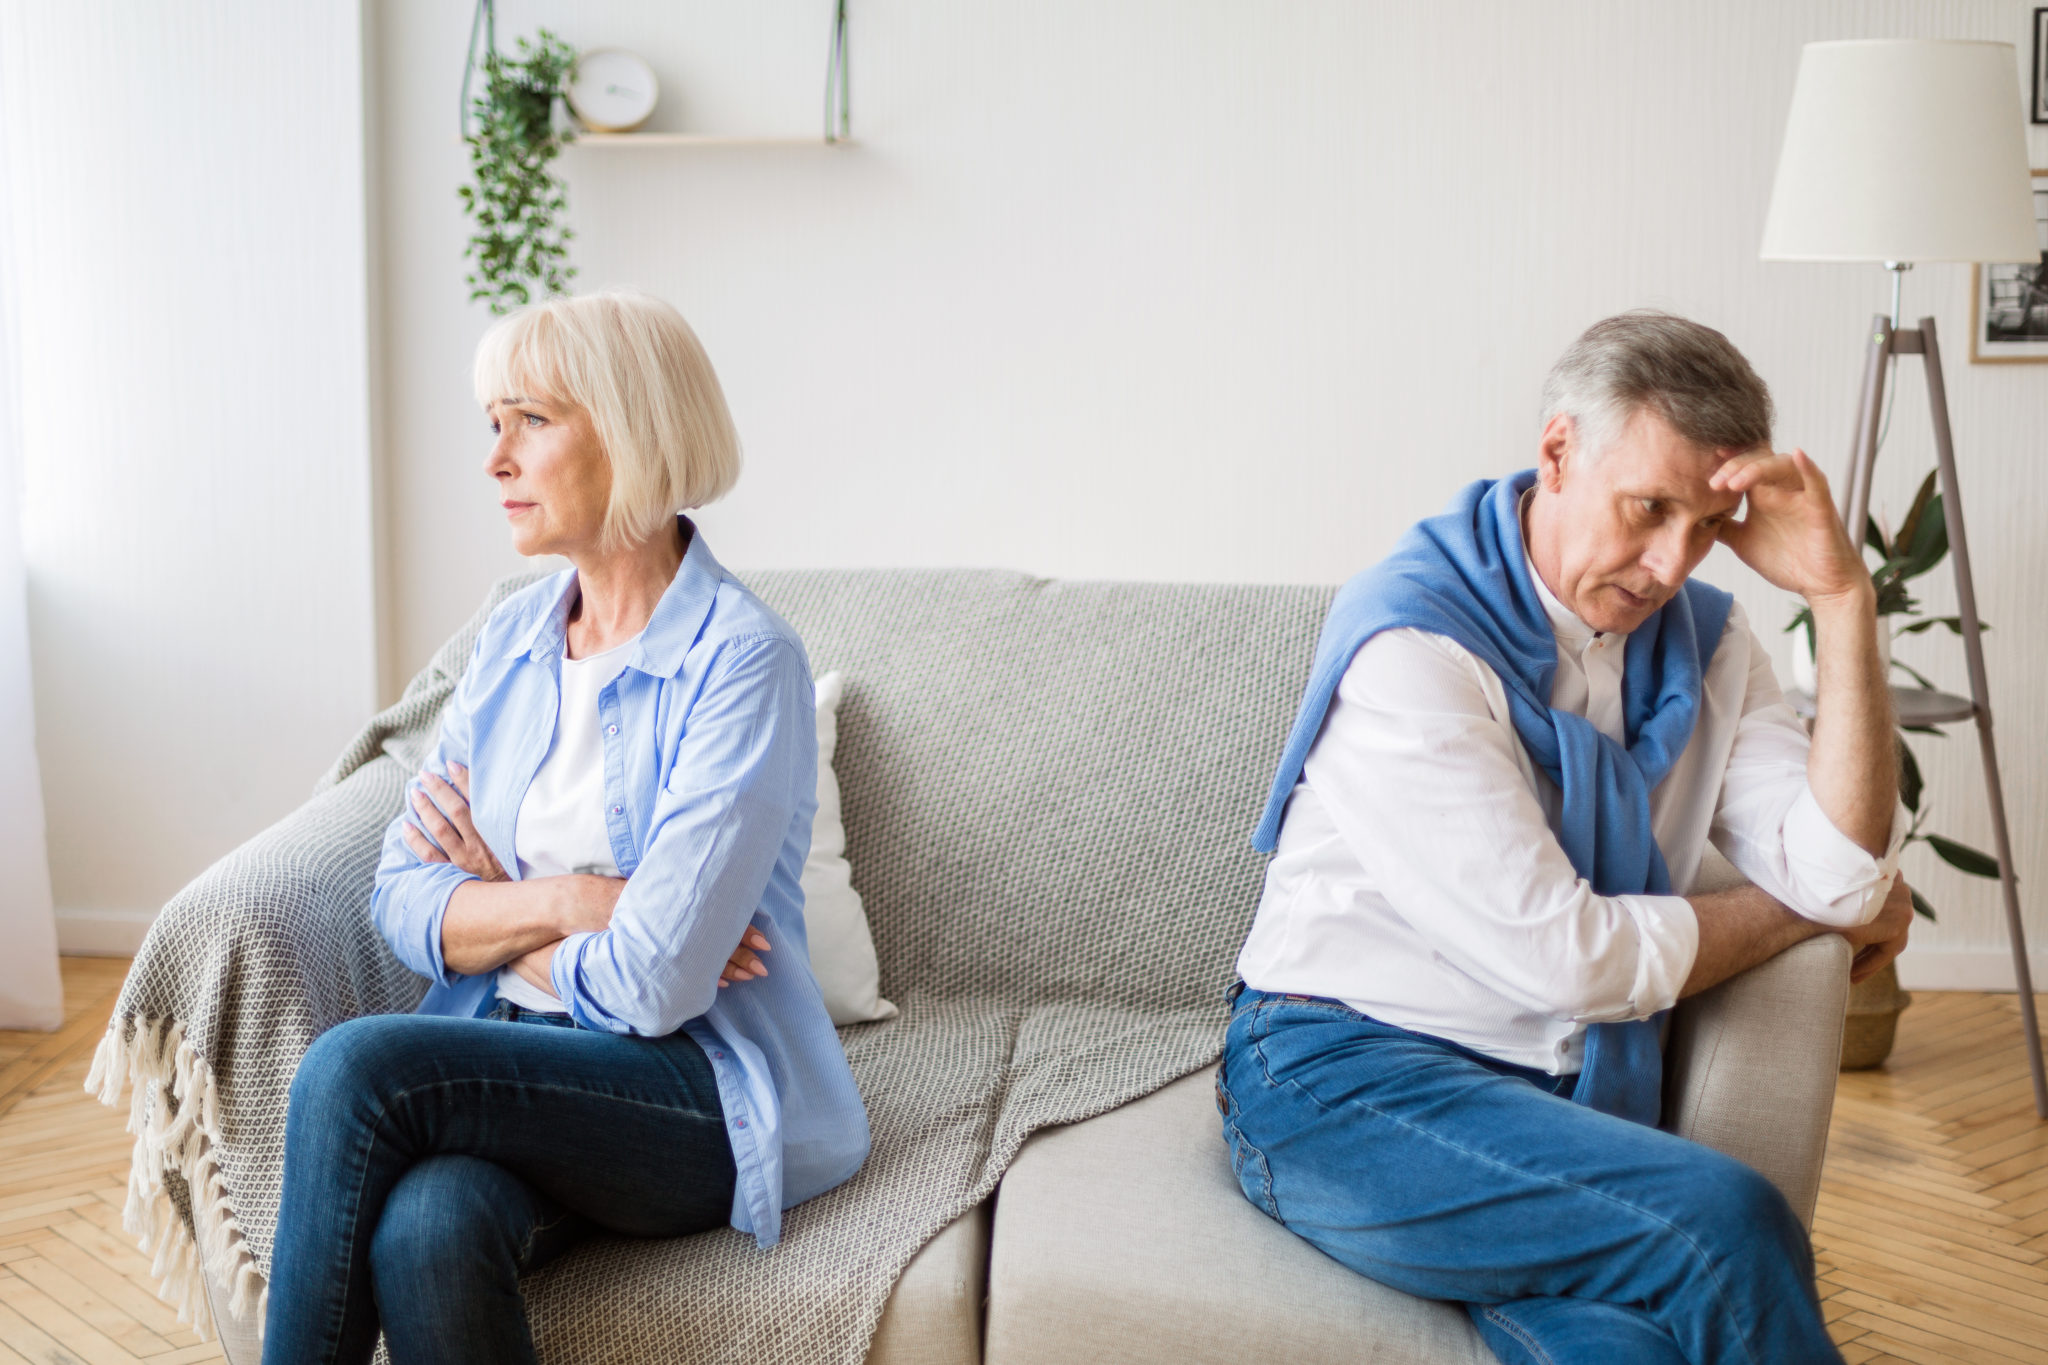 An older couple sitting on a couch looking at opposite directions, representing how one can benefit from calling a Chicago divorce lawyer.